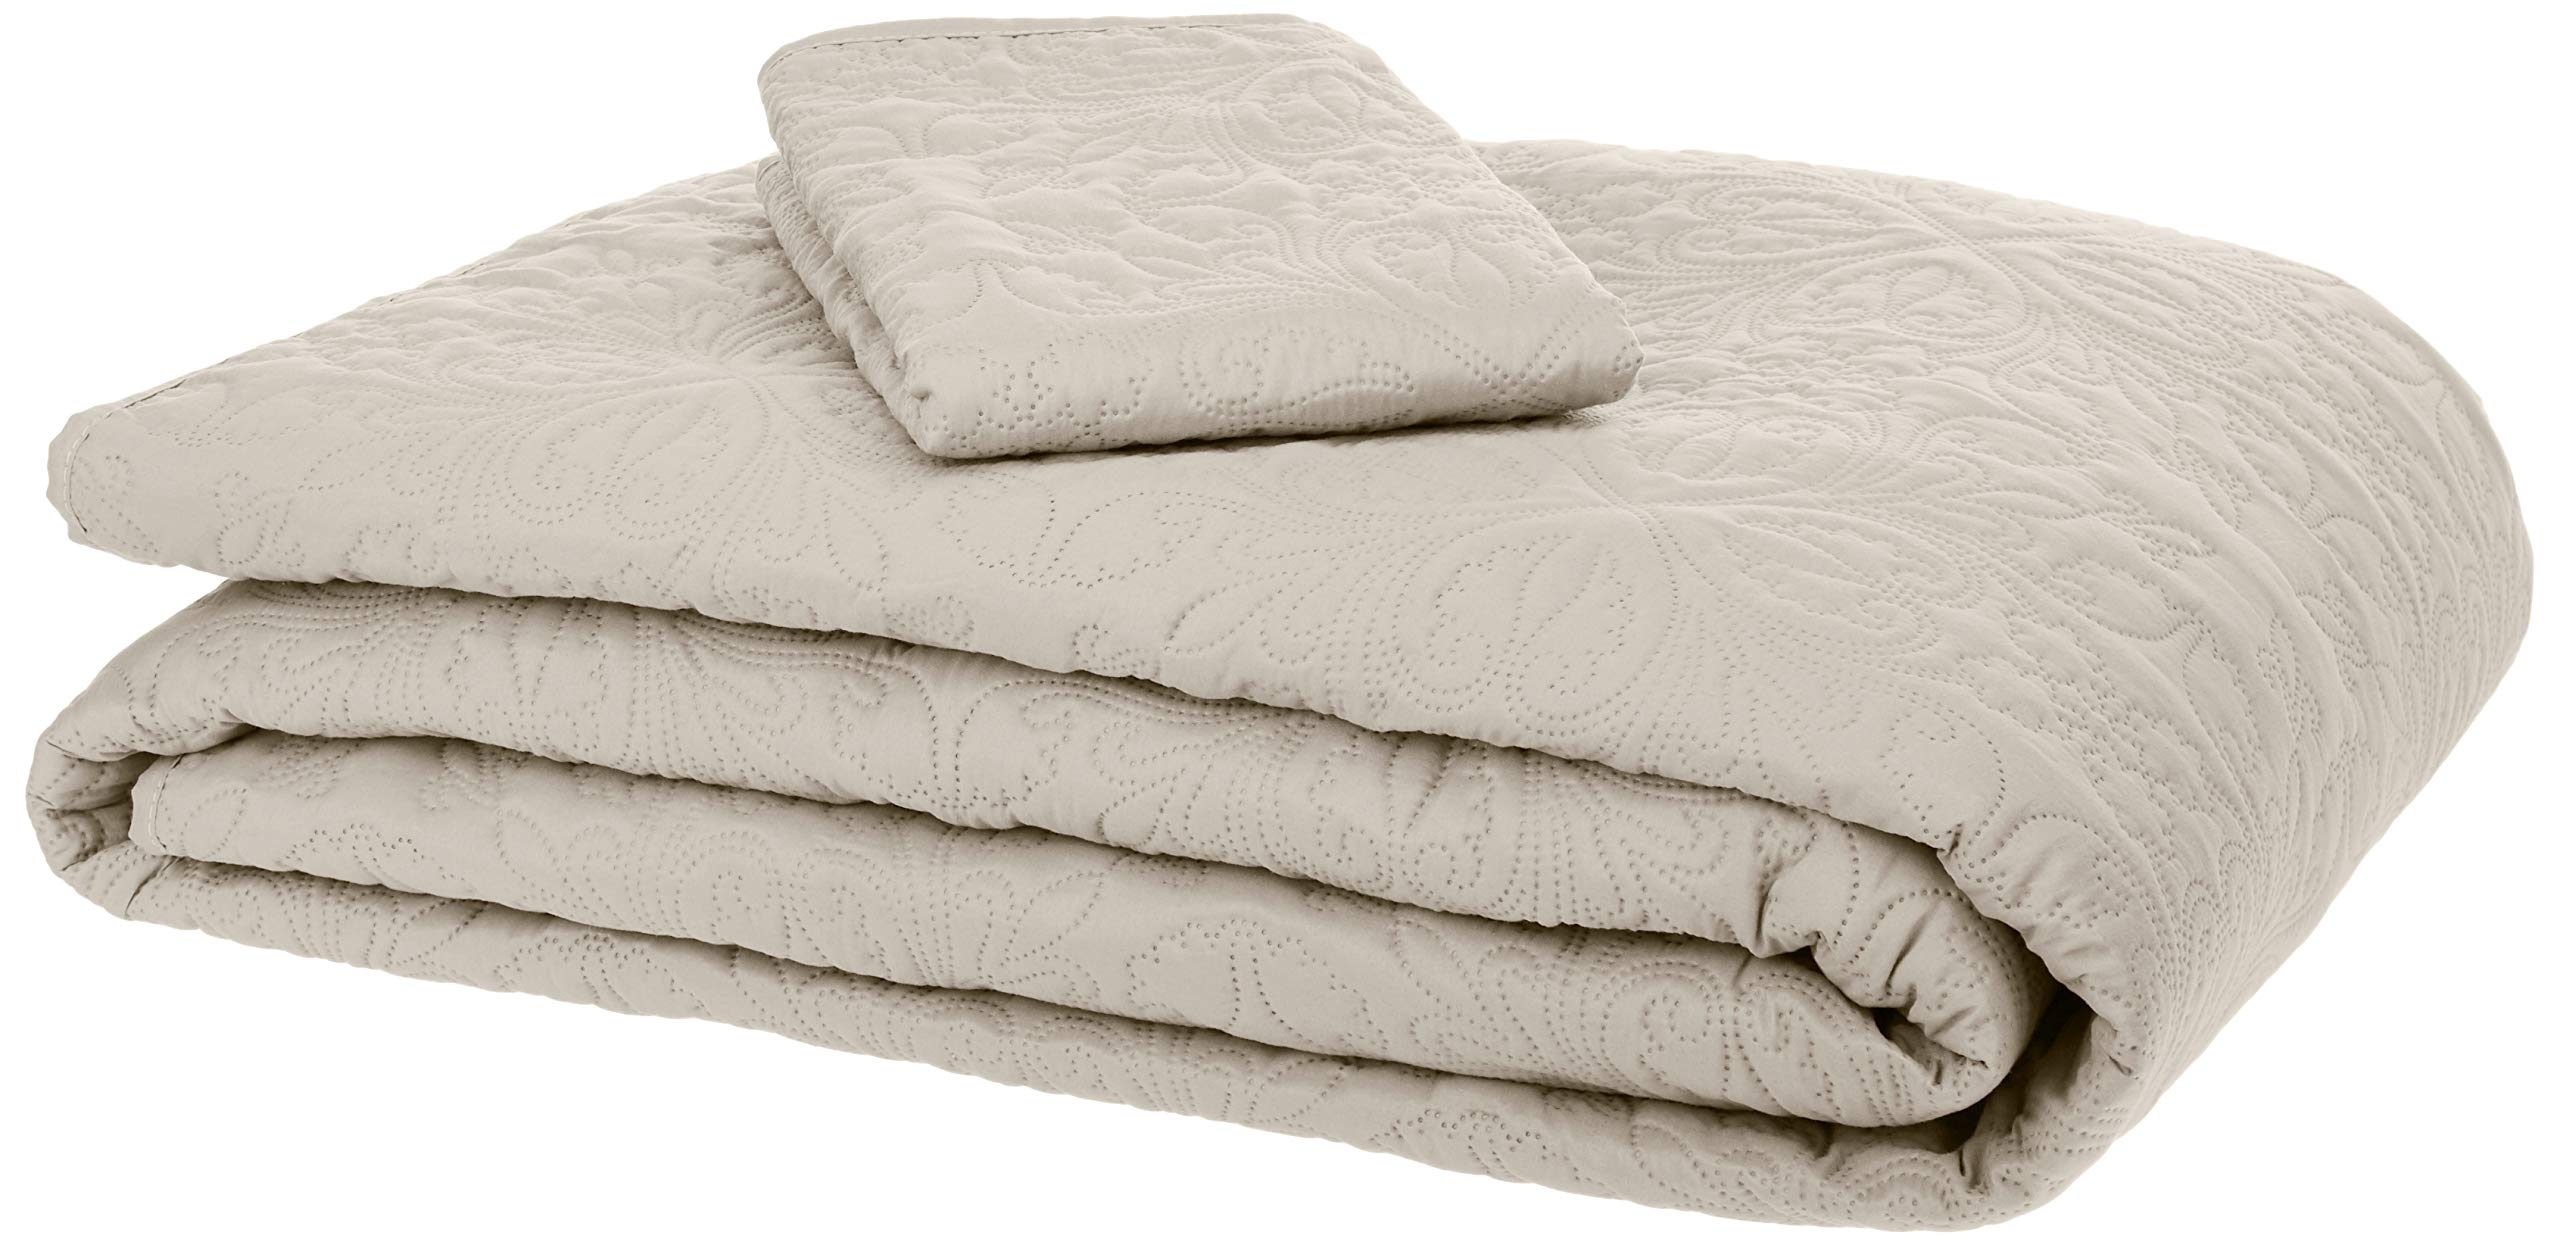 AmazonBasics Oversized Quilt Coverlet Bed Set - Twin, Beige Floral